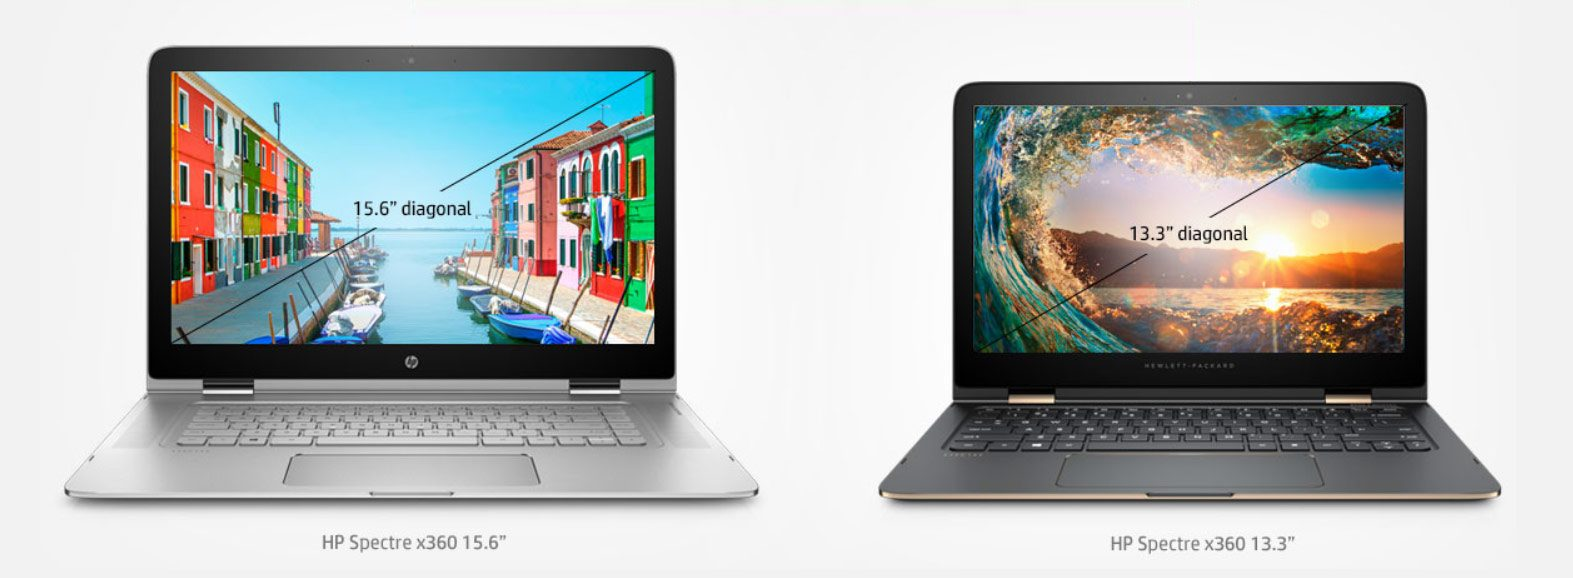 The Spectre X360s are available with 13.3 or 15.6 inch displays